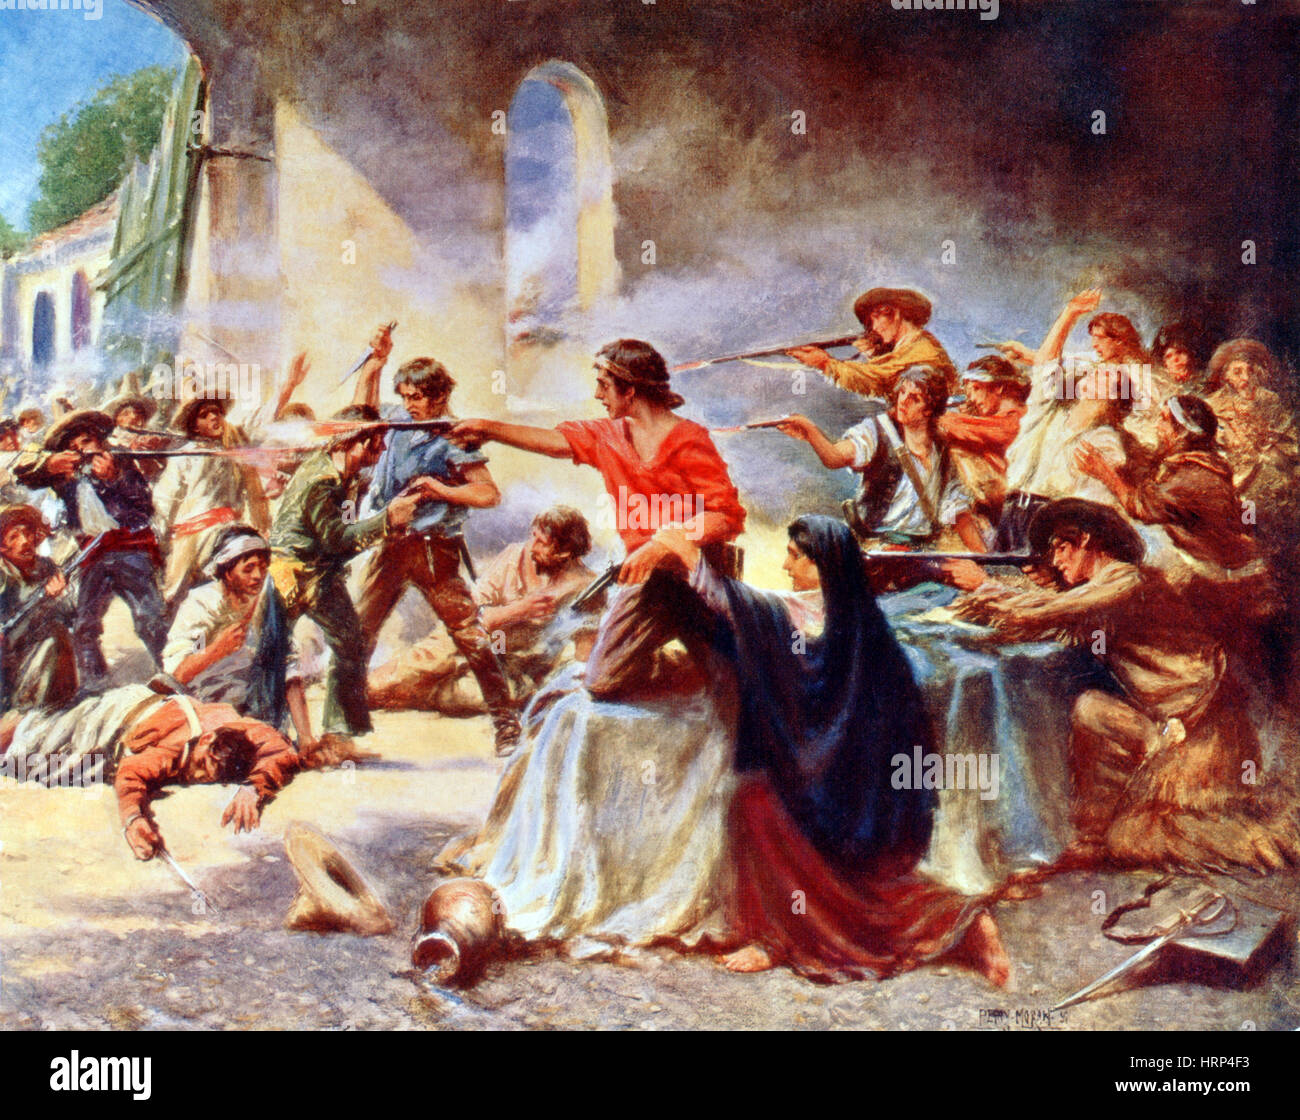 Battle of the Alamo, 1836 - Stock Image